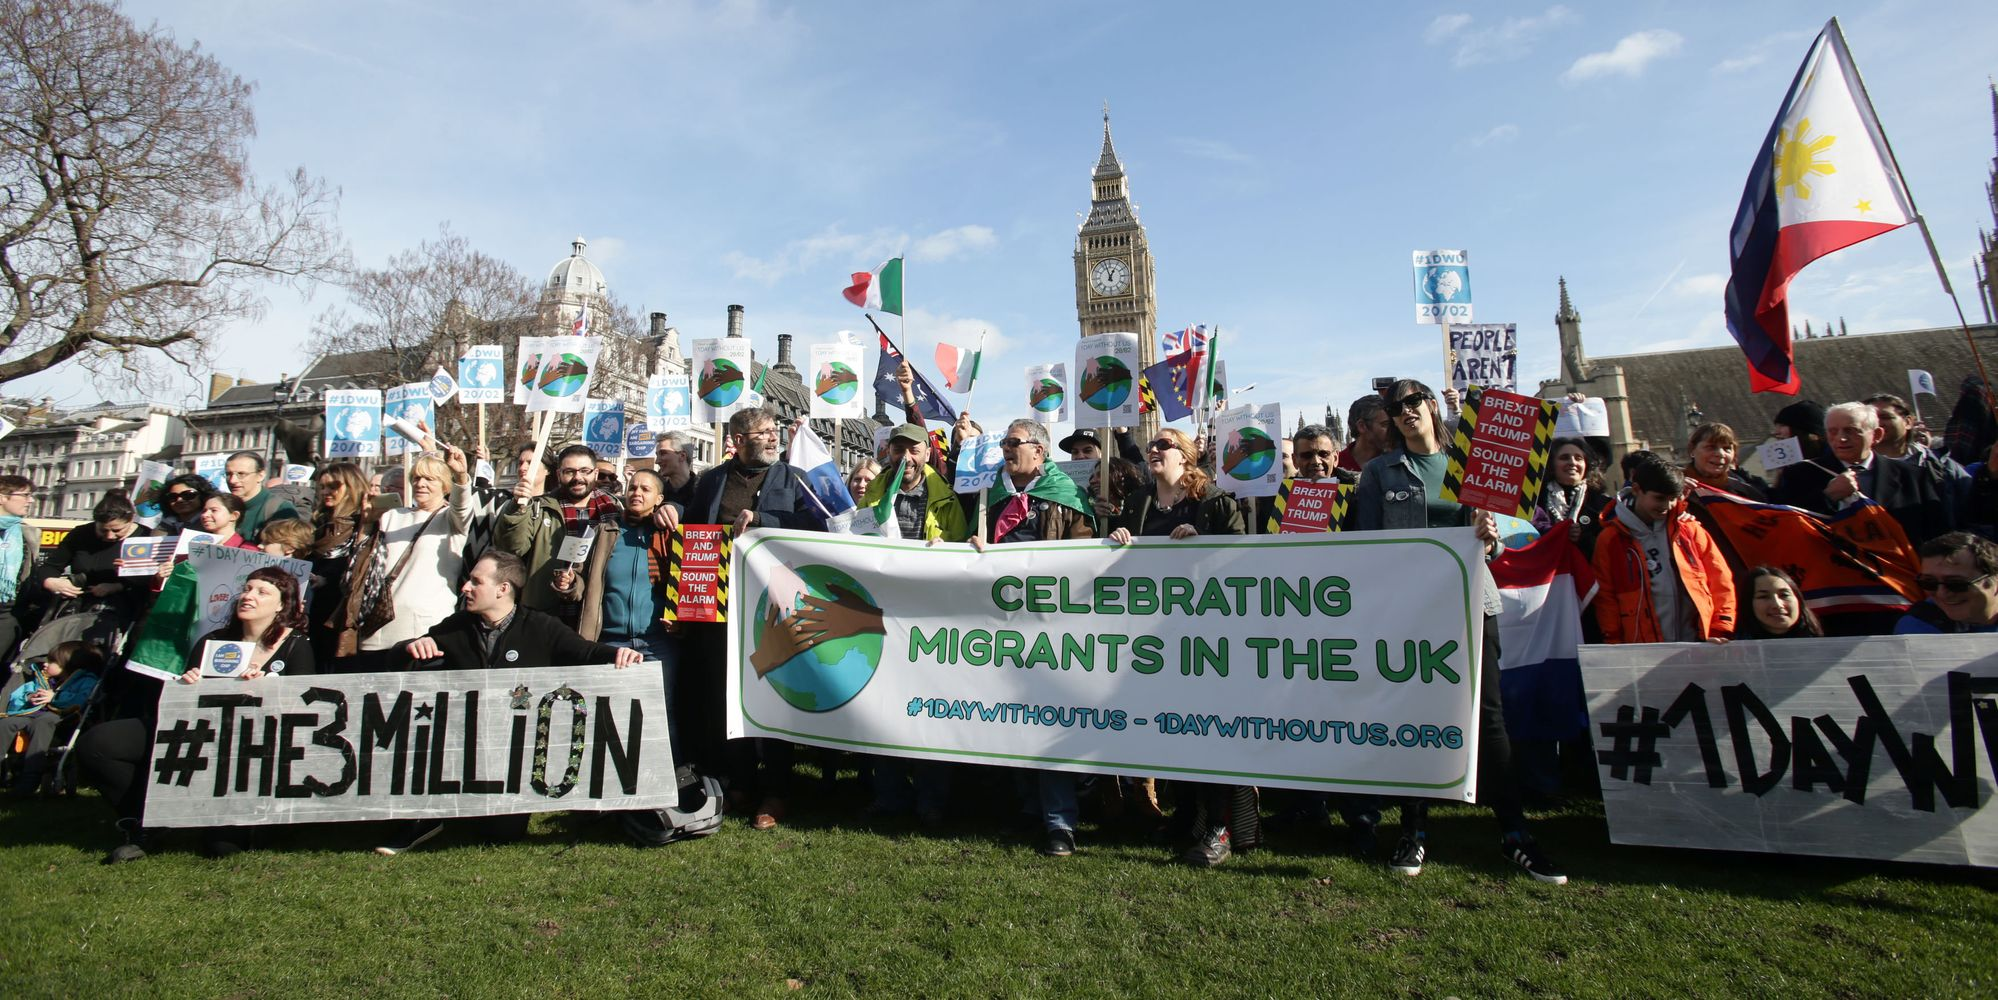 One Day Without Us Campaign Highlights Positive Impact Migrants Have On UK Economy